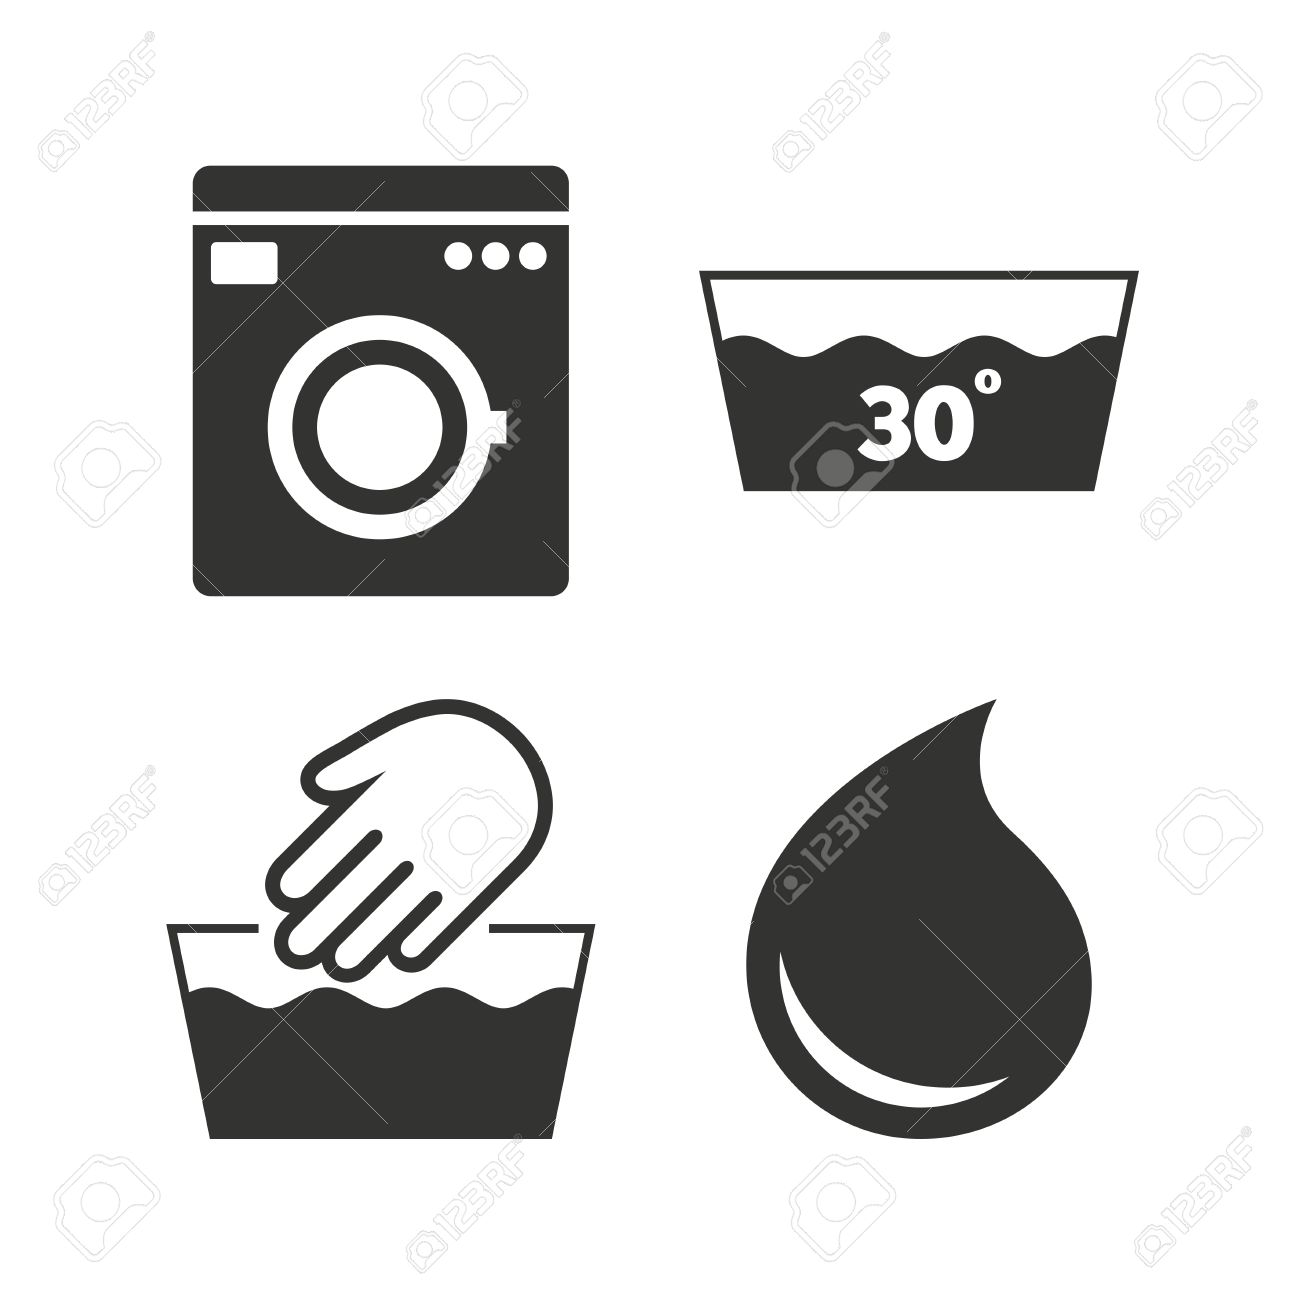 Hand Wash Icon Machine Washable At 30 Degrees Symbols Laundry